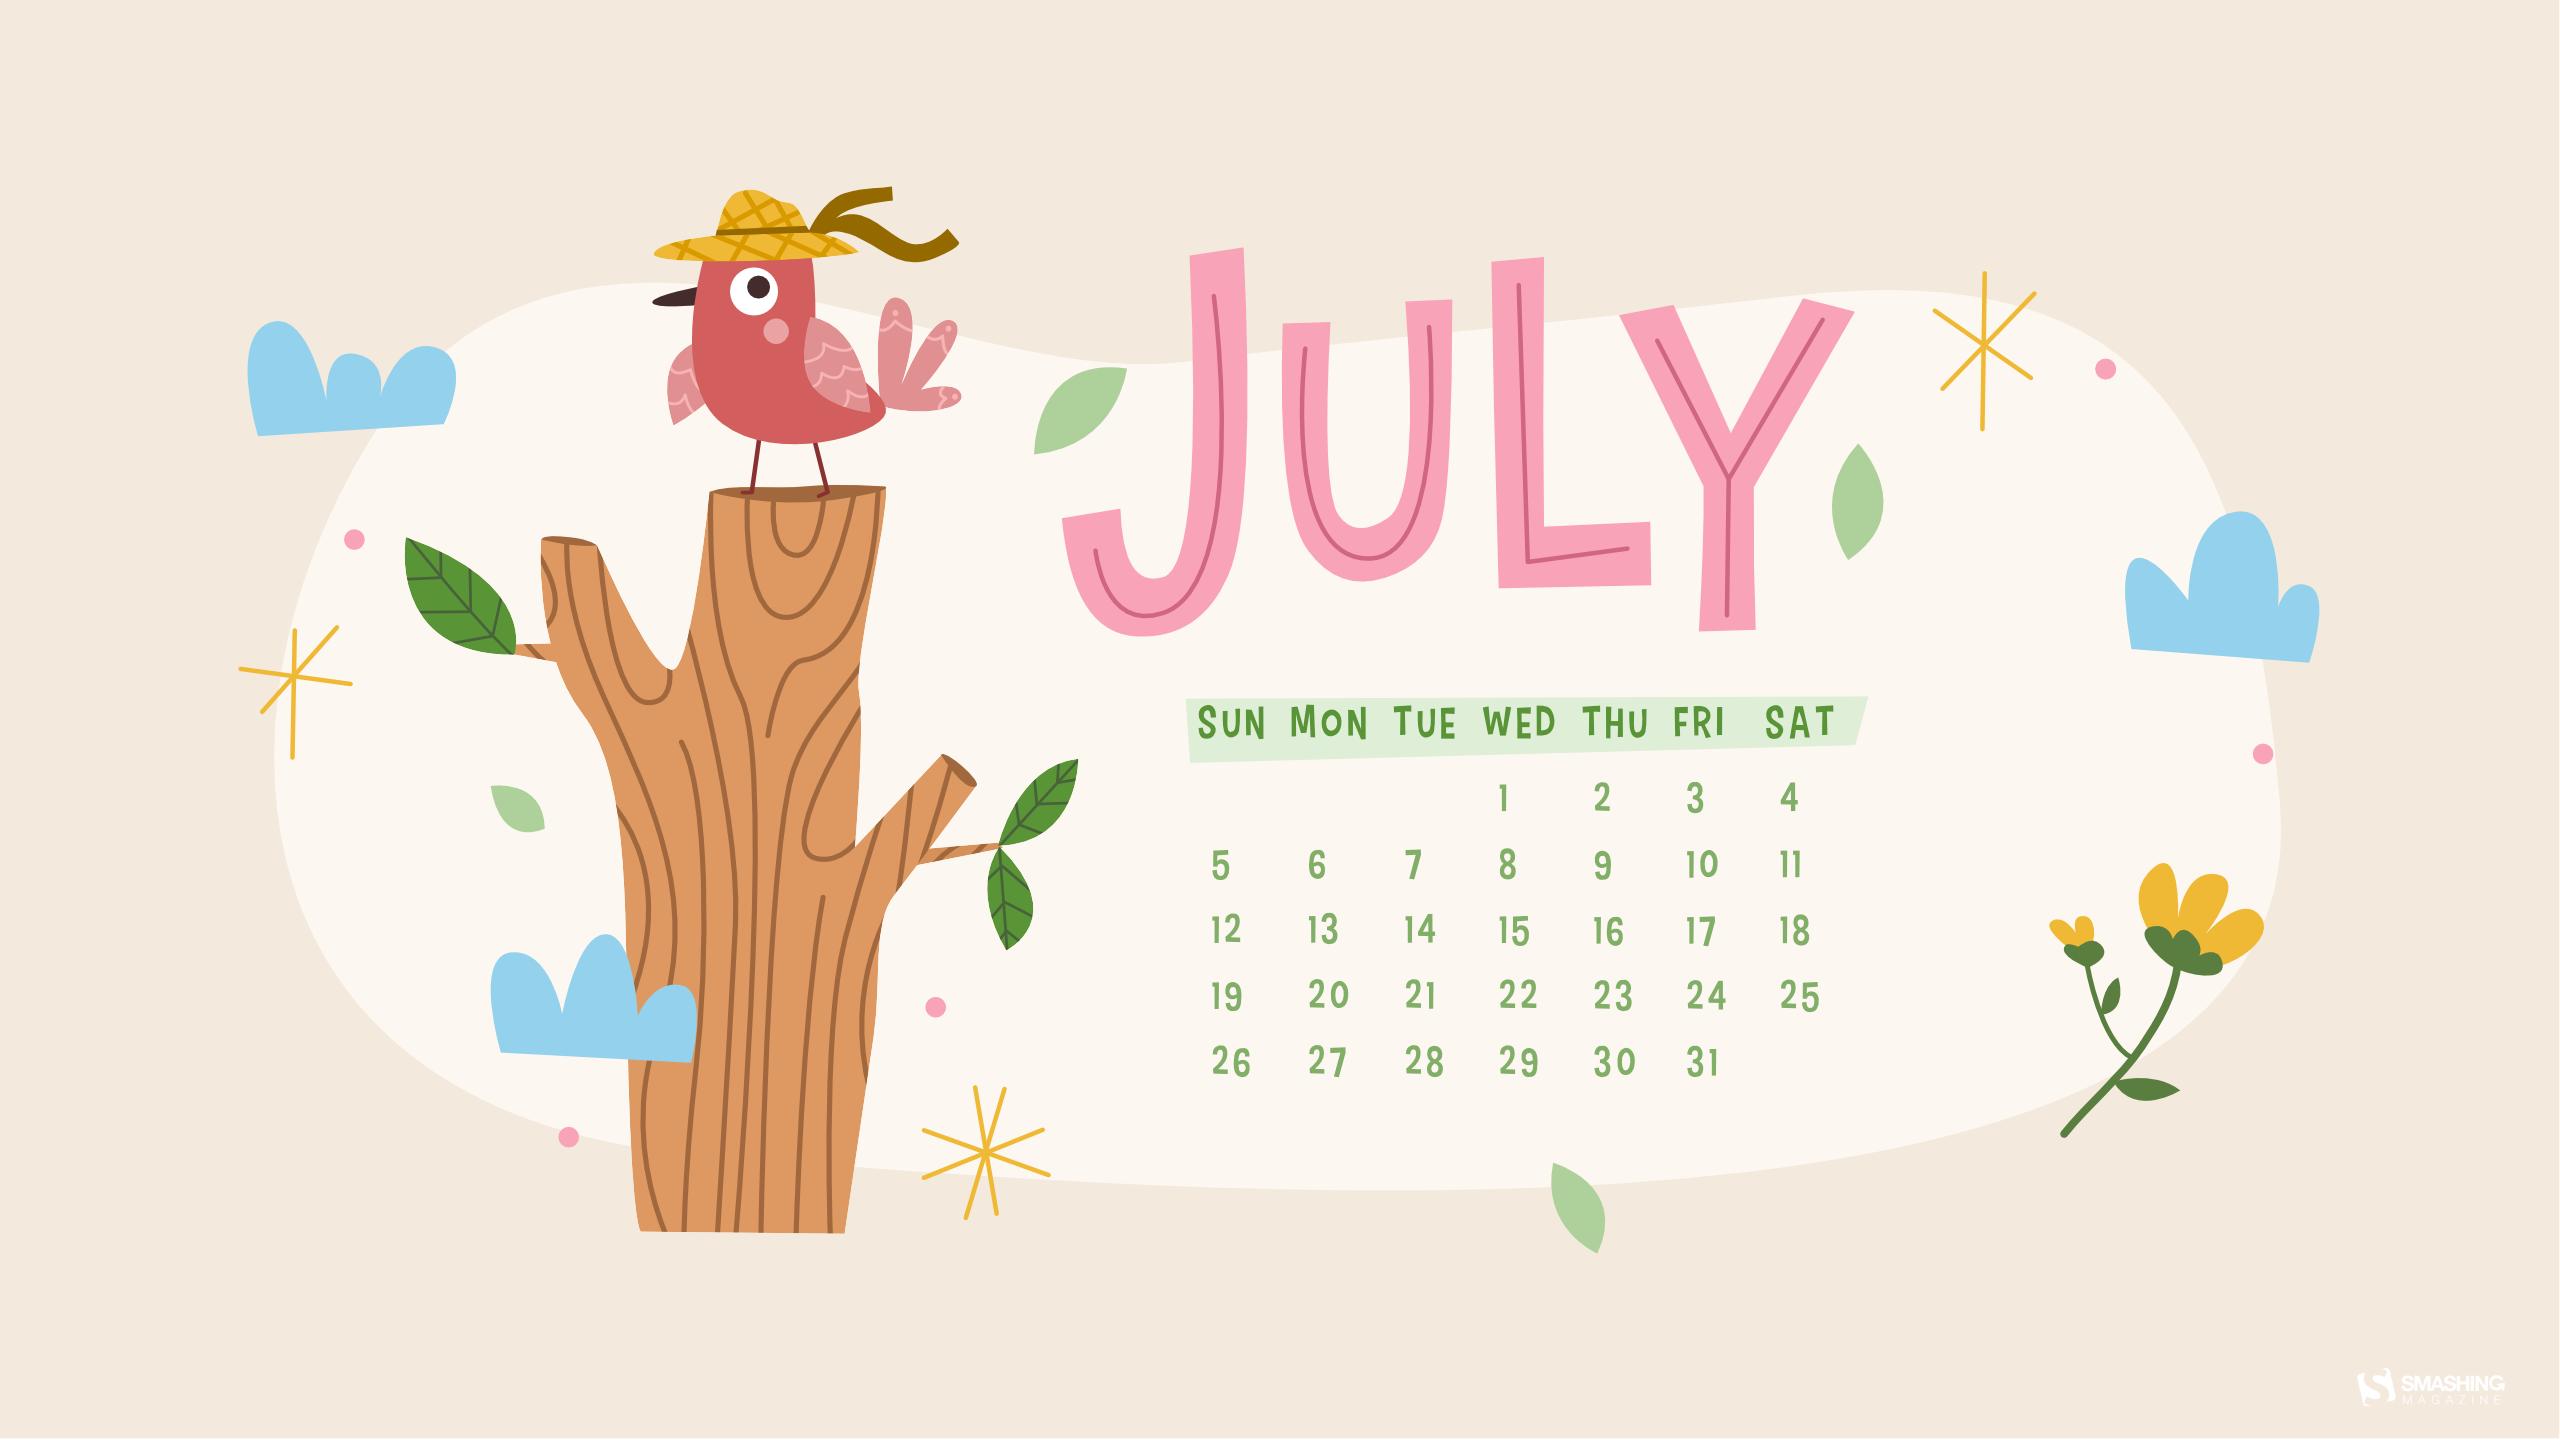 Calendar Wallpaper 2022.Finding Inspiration In The Simple Things July 2020 Wallpapers Edition Smashing Magazine